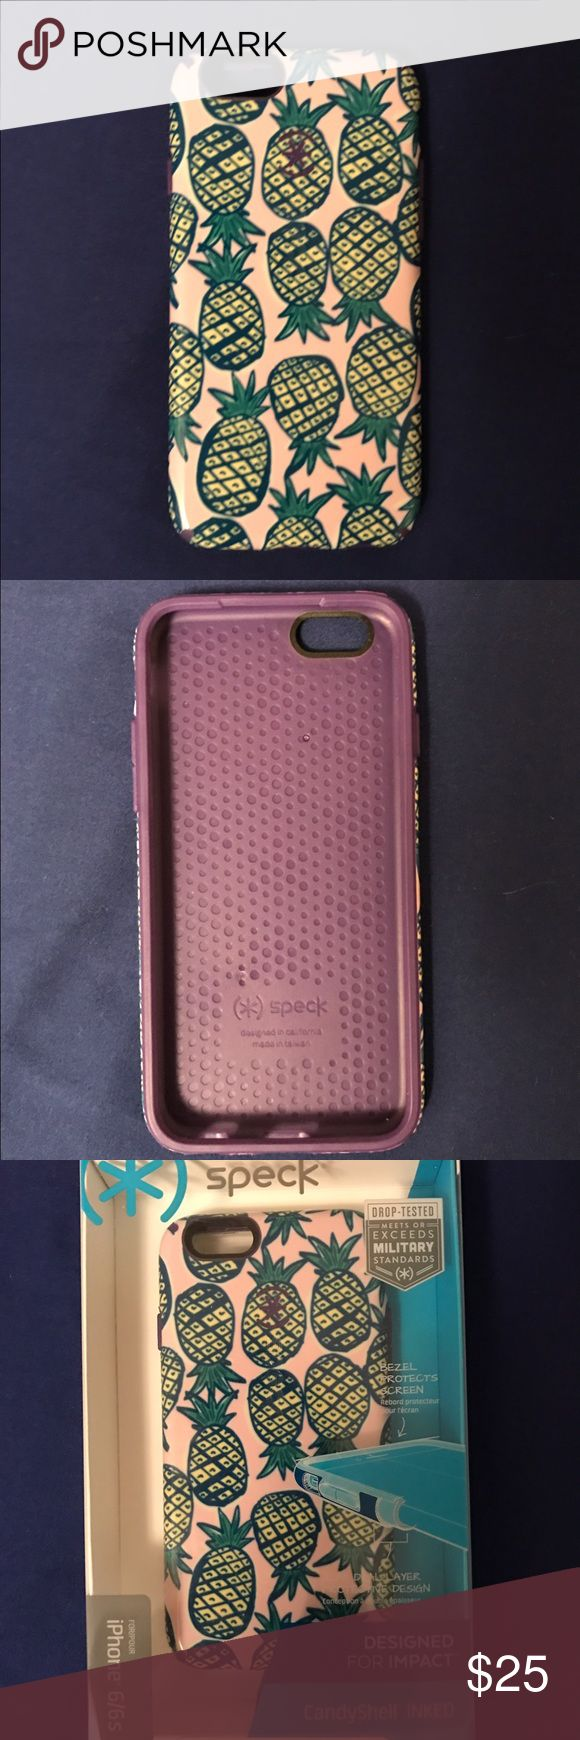 Speck iPhone 6/6s CandyShell Inked Case Brand new, never used, has impact protection with a fun pineapple design Accessories Phone Cases